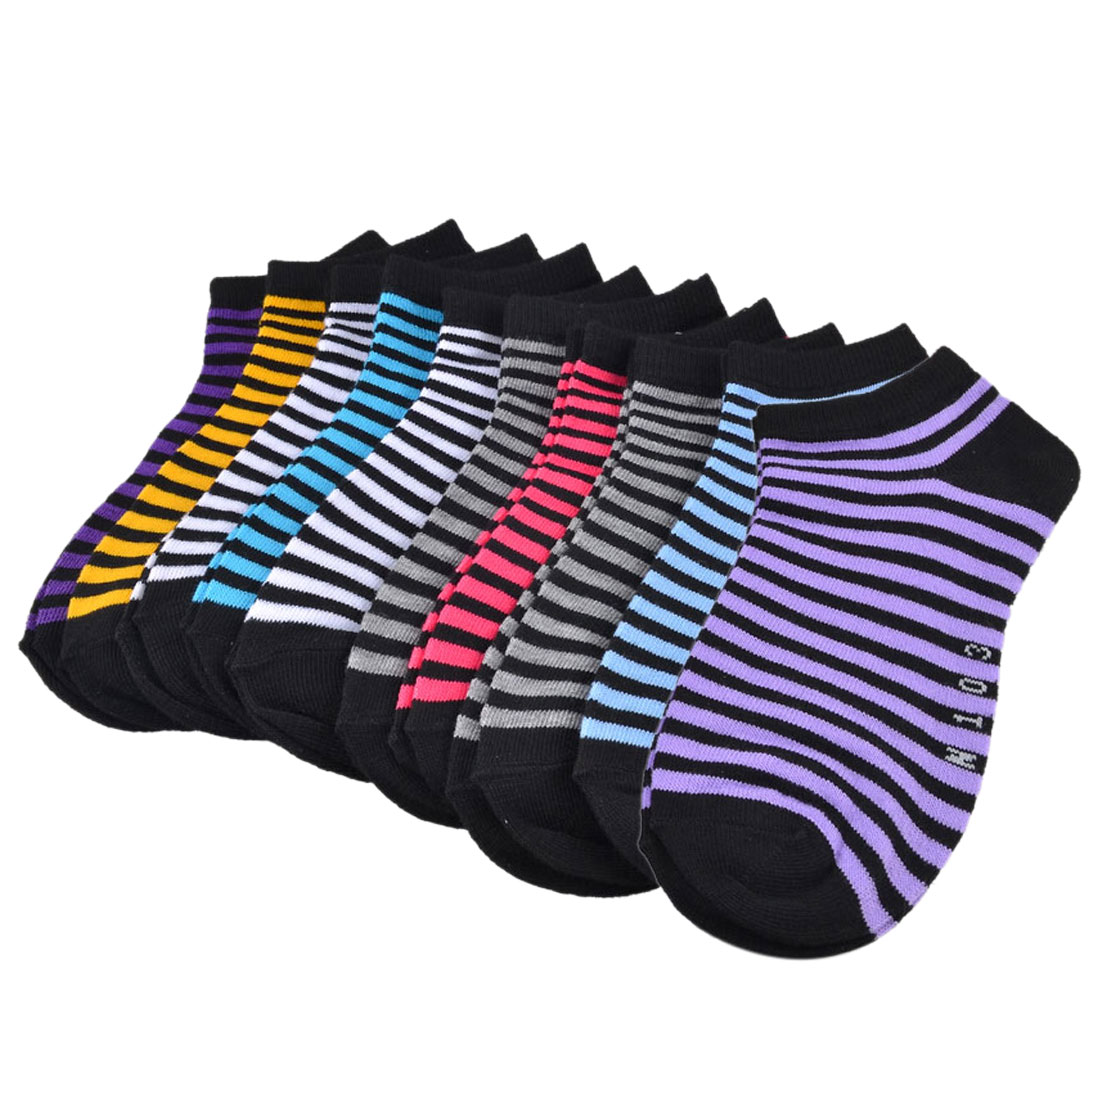 10 Pair Colorful Stretchy Cuff Striped Print Ankle Socks for Woman